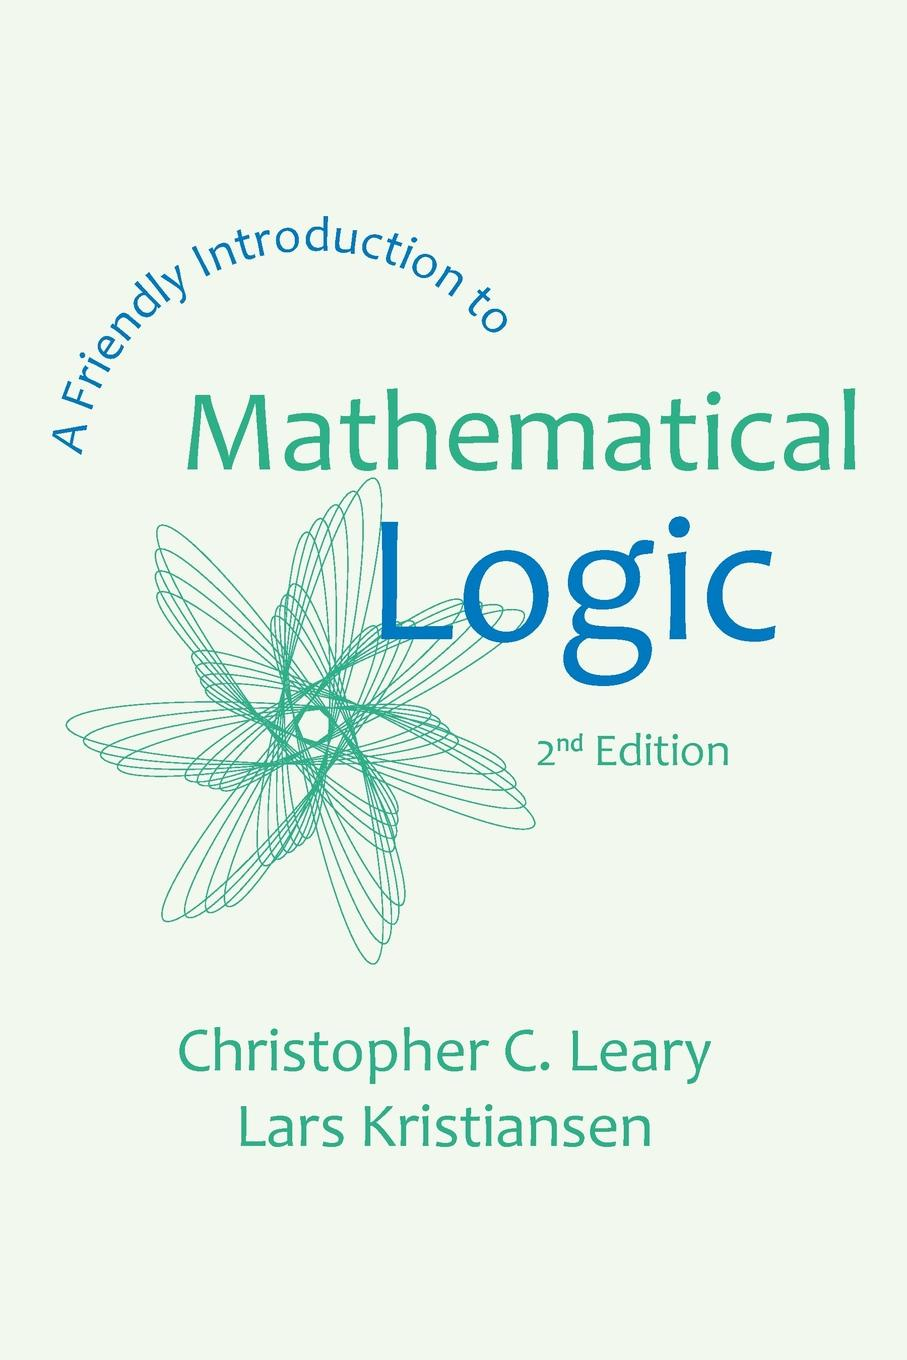 Christopher C. Leary, Lars Kristiansen A Friendly Introduction to Mathematical Logic asif nabiyev karim jafarli and matanat sultanova the mathematical proof and logical thinking in comprehensive schools